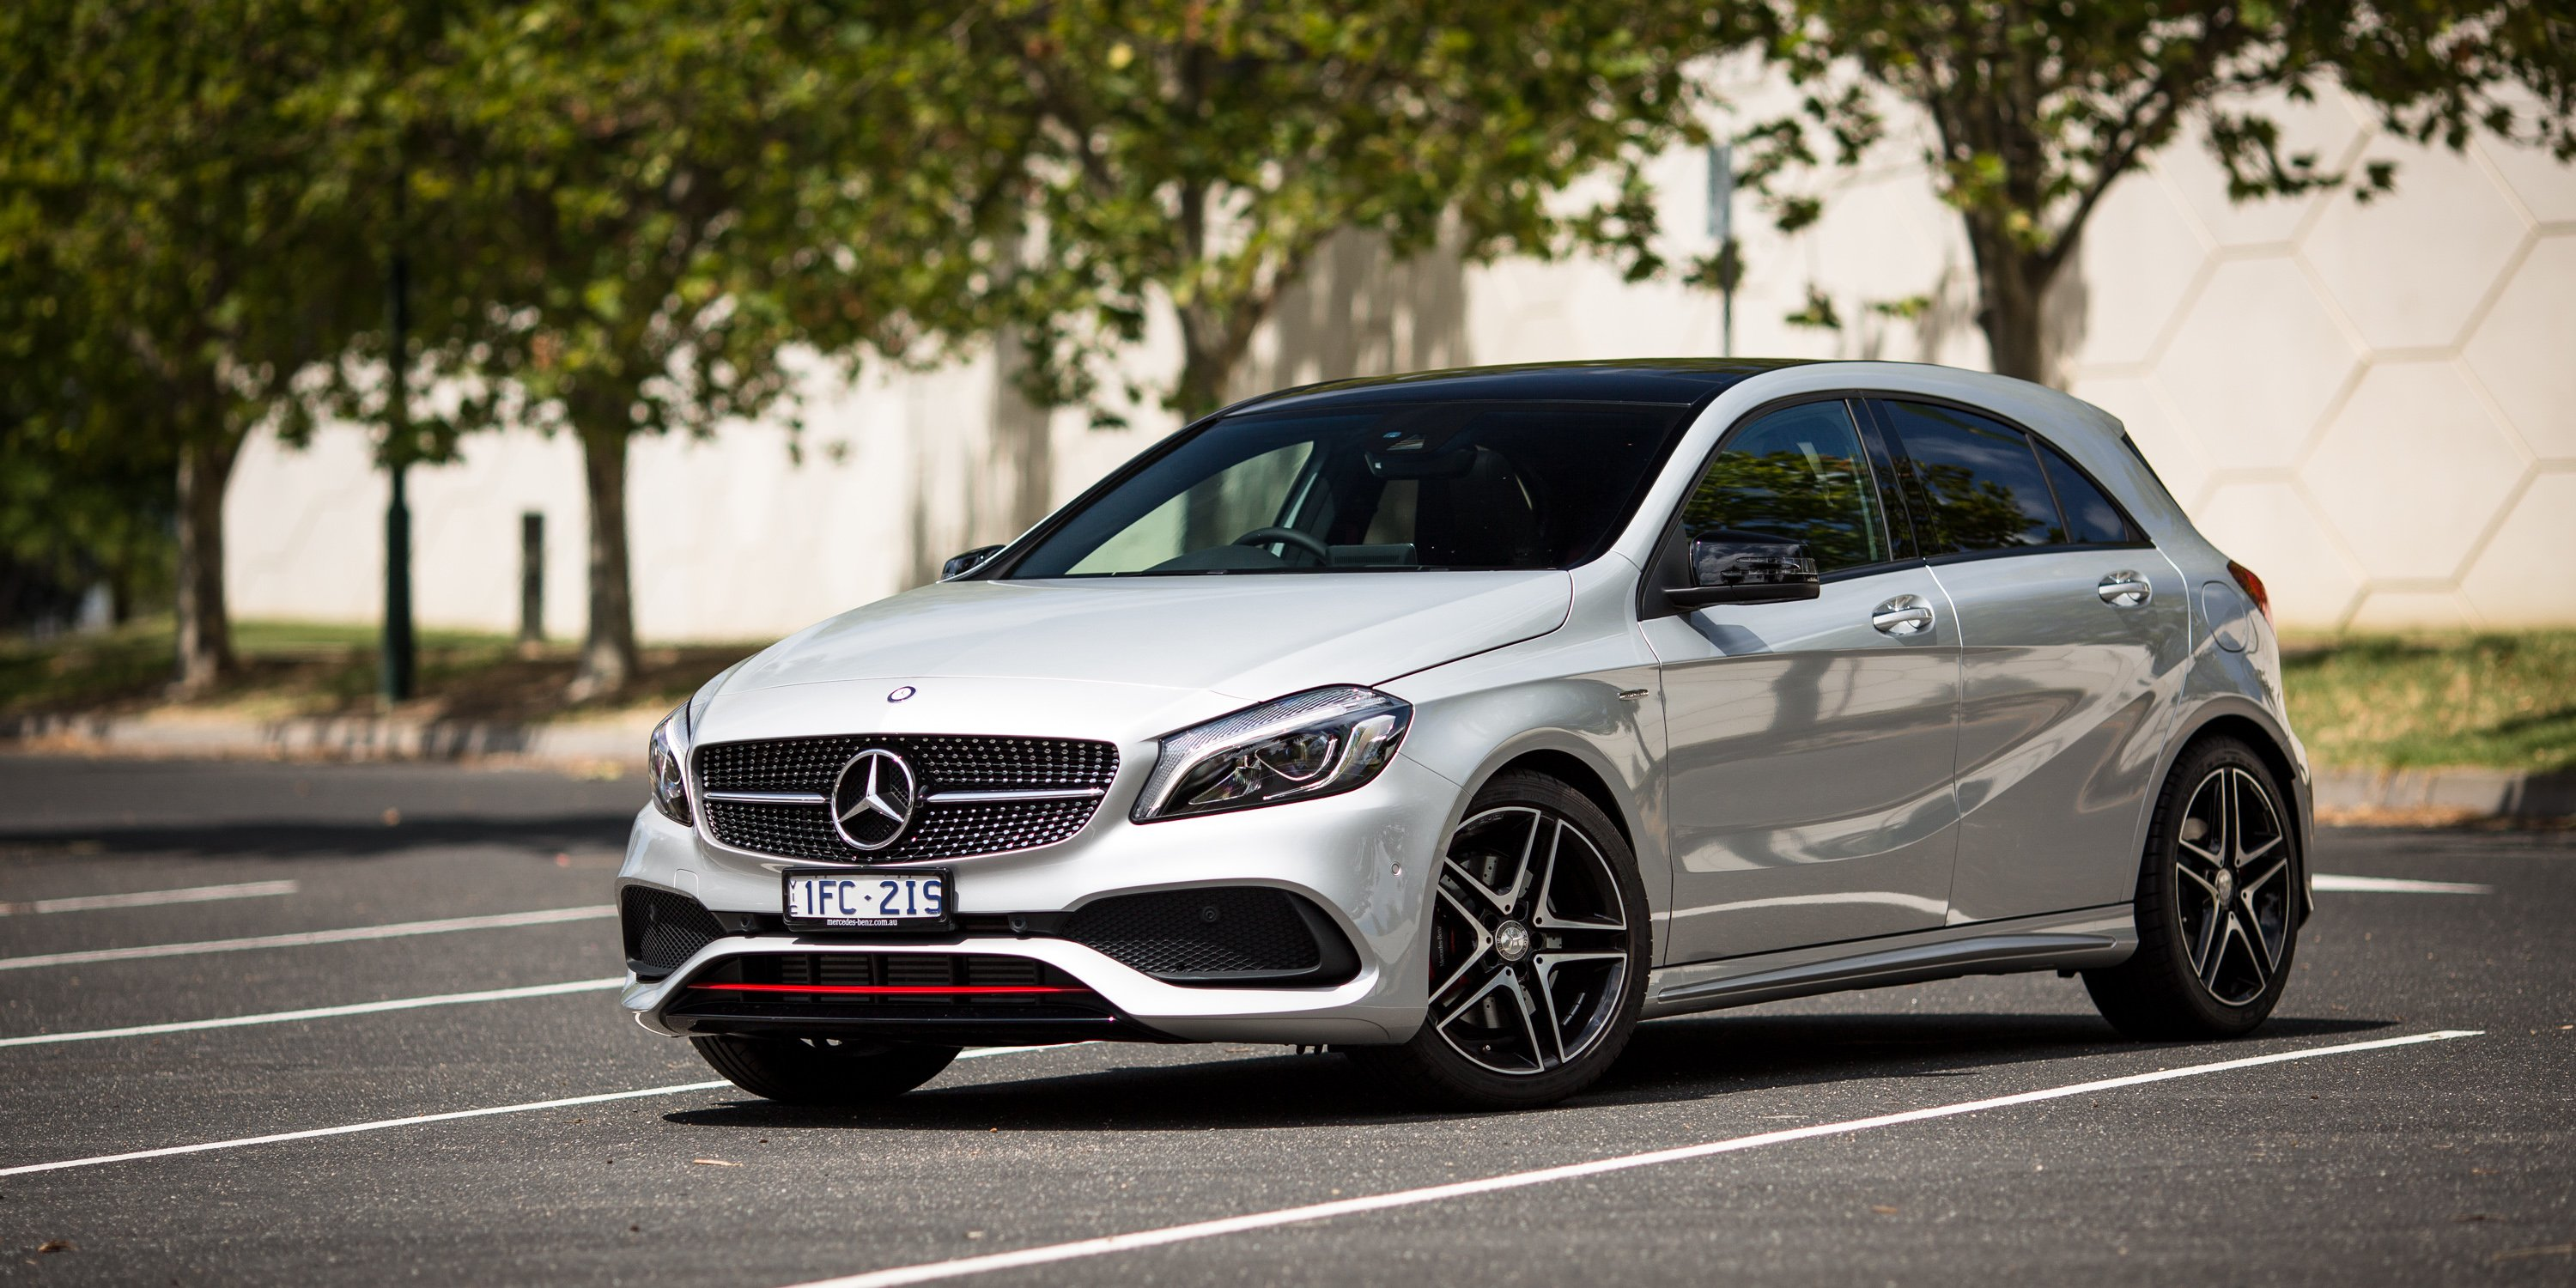 2016 mercedes benz a class review caradvice for Small mercedes benz